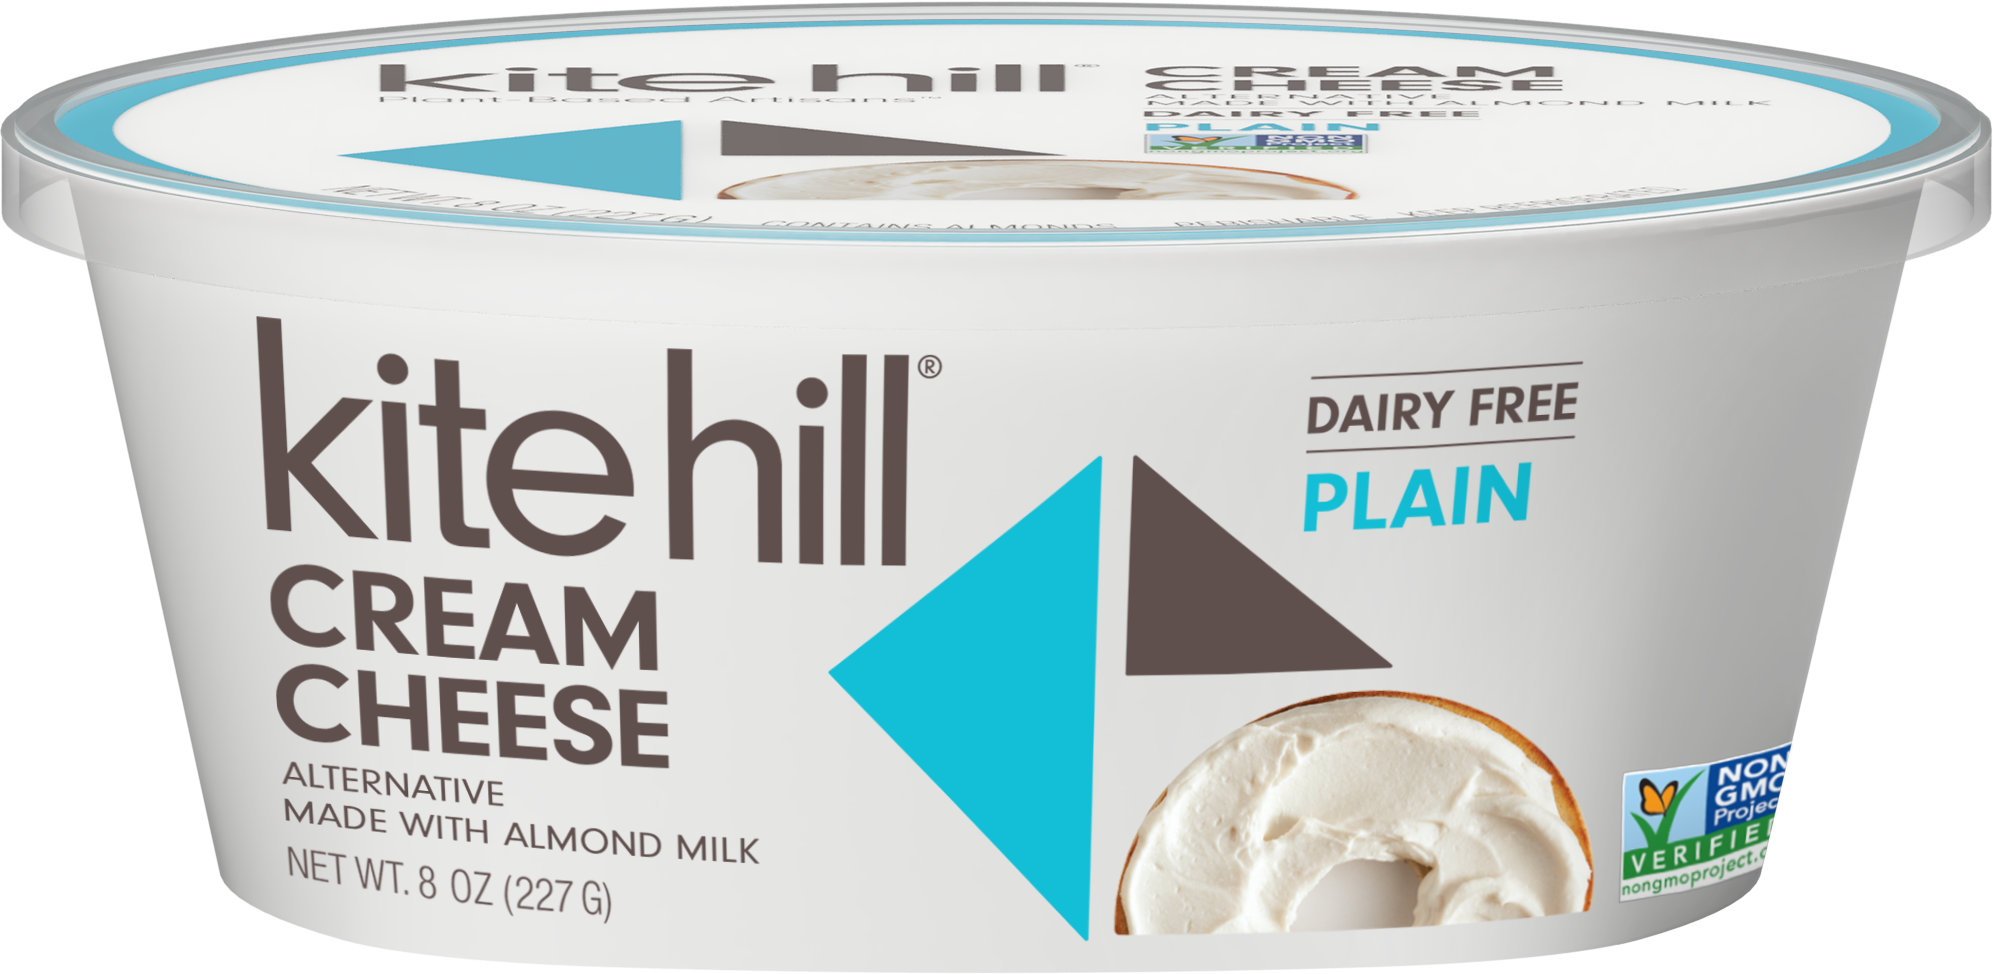 Kite Hill Cream Cheese Alternative In 2020 Cheese Alternatives Dairy Free Cream Cheese Plant Based Cream Cheese